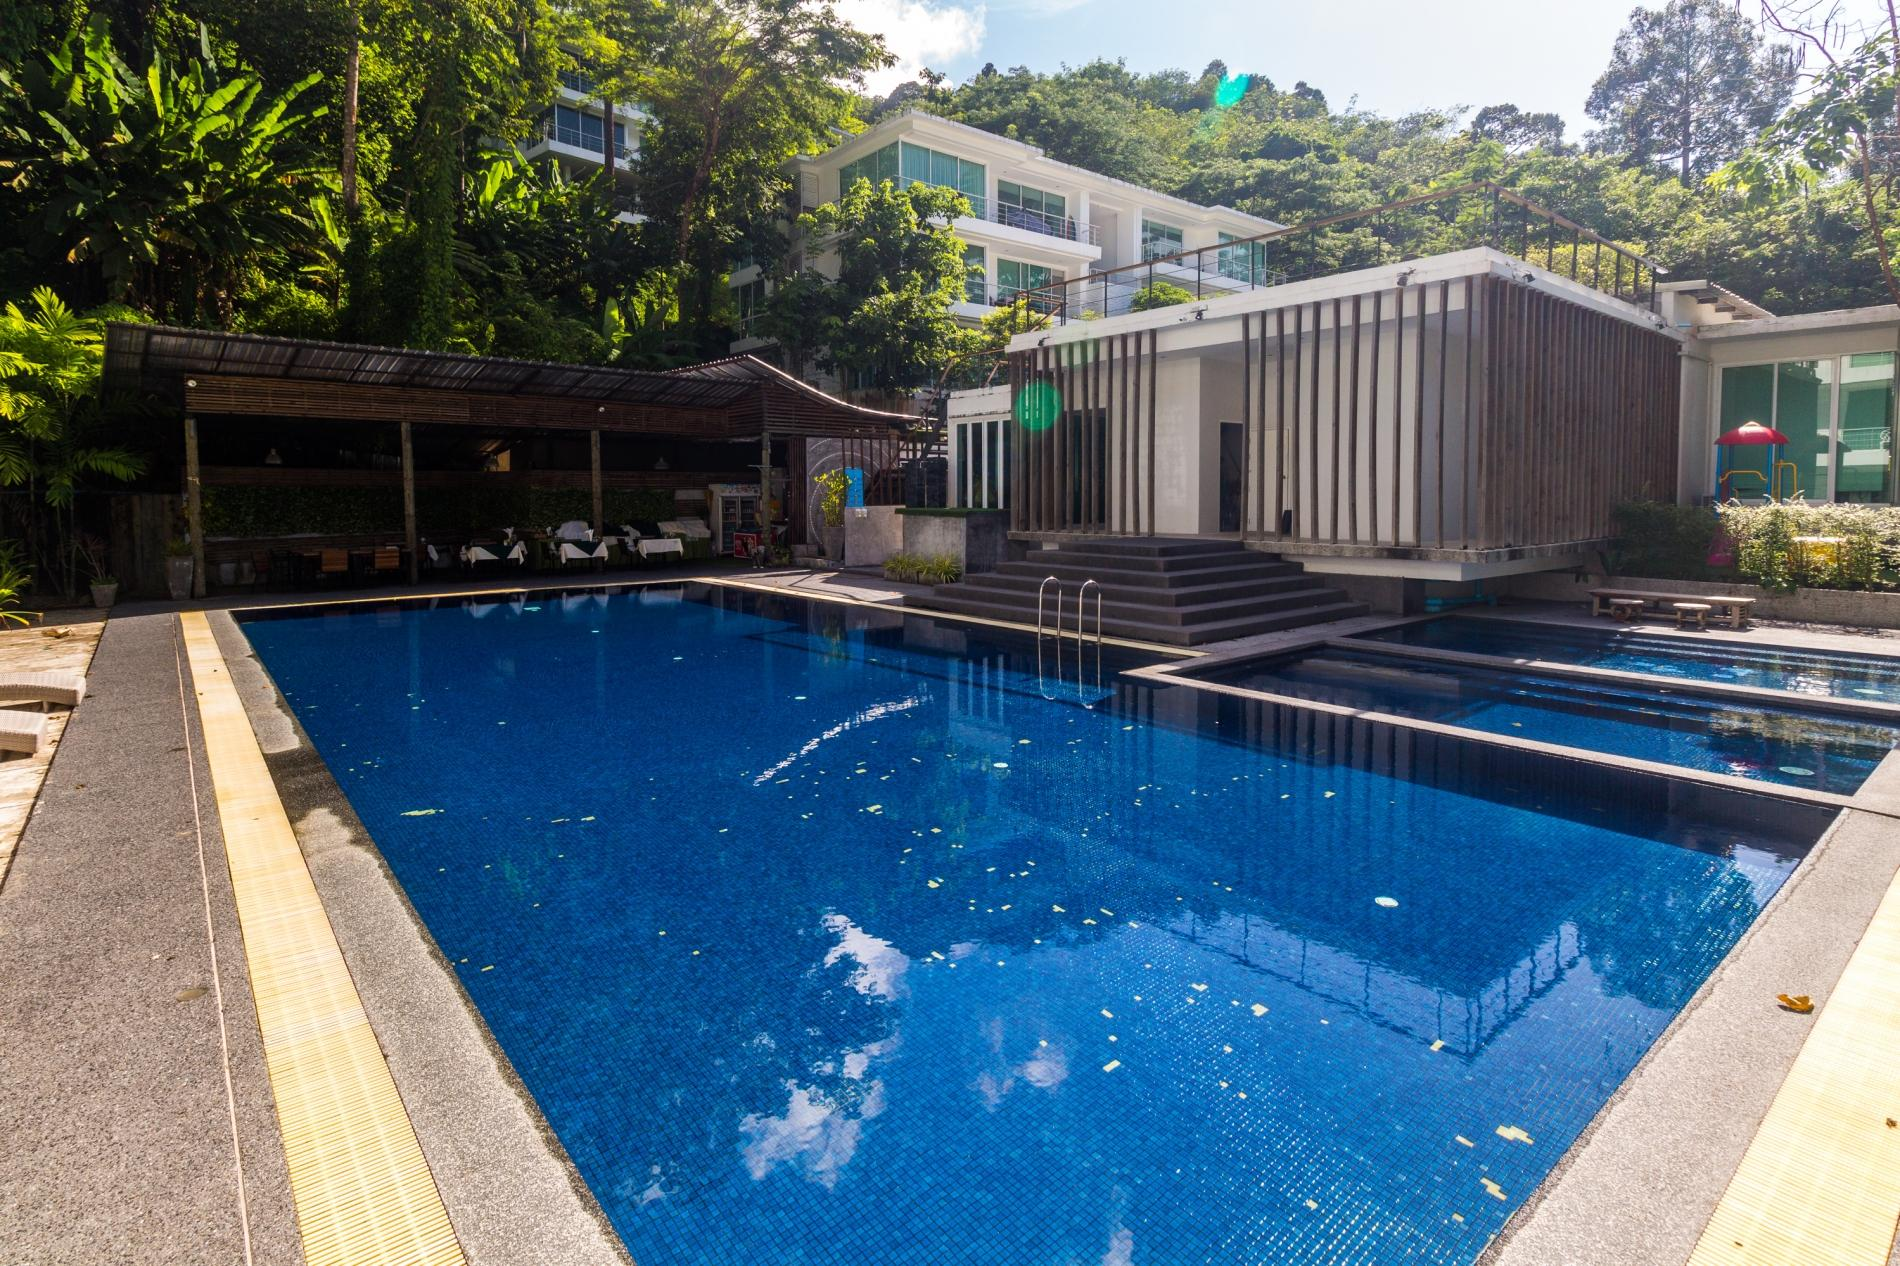 Apartment Zen Space 412 - Family holiday with pools  children area  gym and free shuttle to beach  photo 16965969